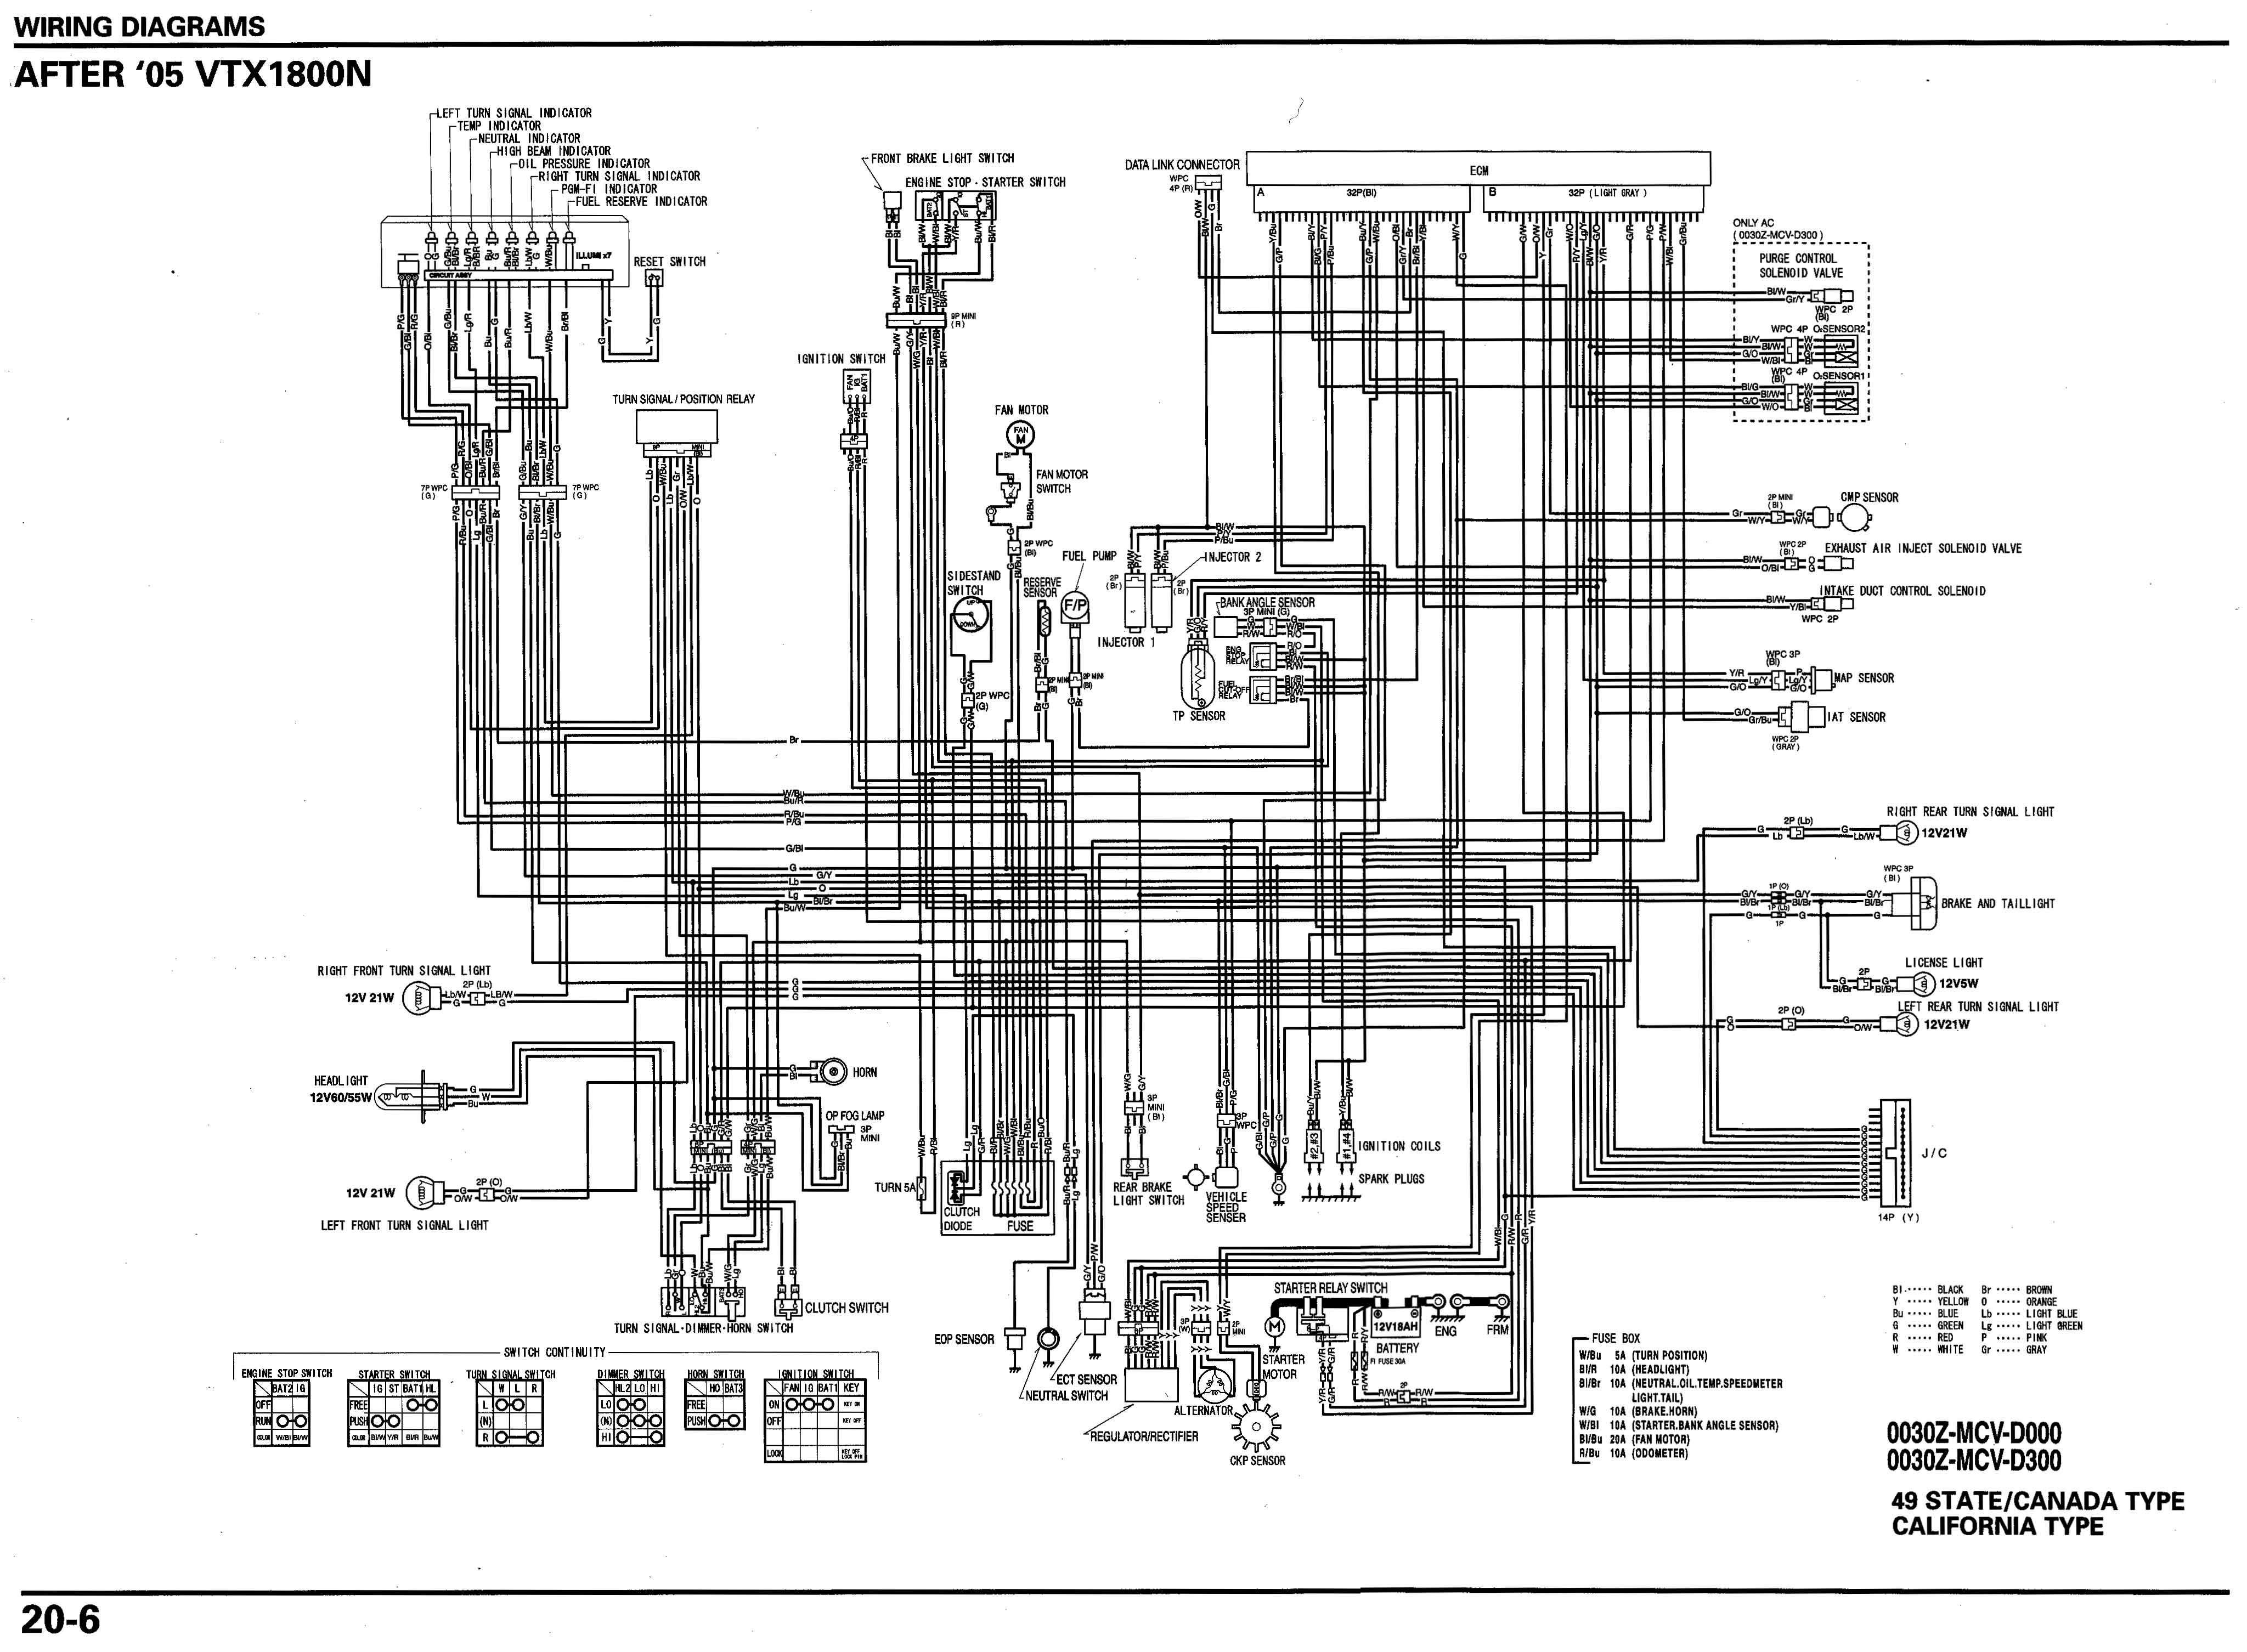 vtx 1800 wiring diagram for coils house wiring diagram symbols u2022 rh maxturner co vtx 1800 electrical diagram 2006 honda vtx 1800 wiring diagram